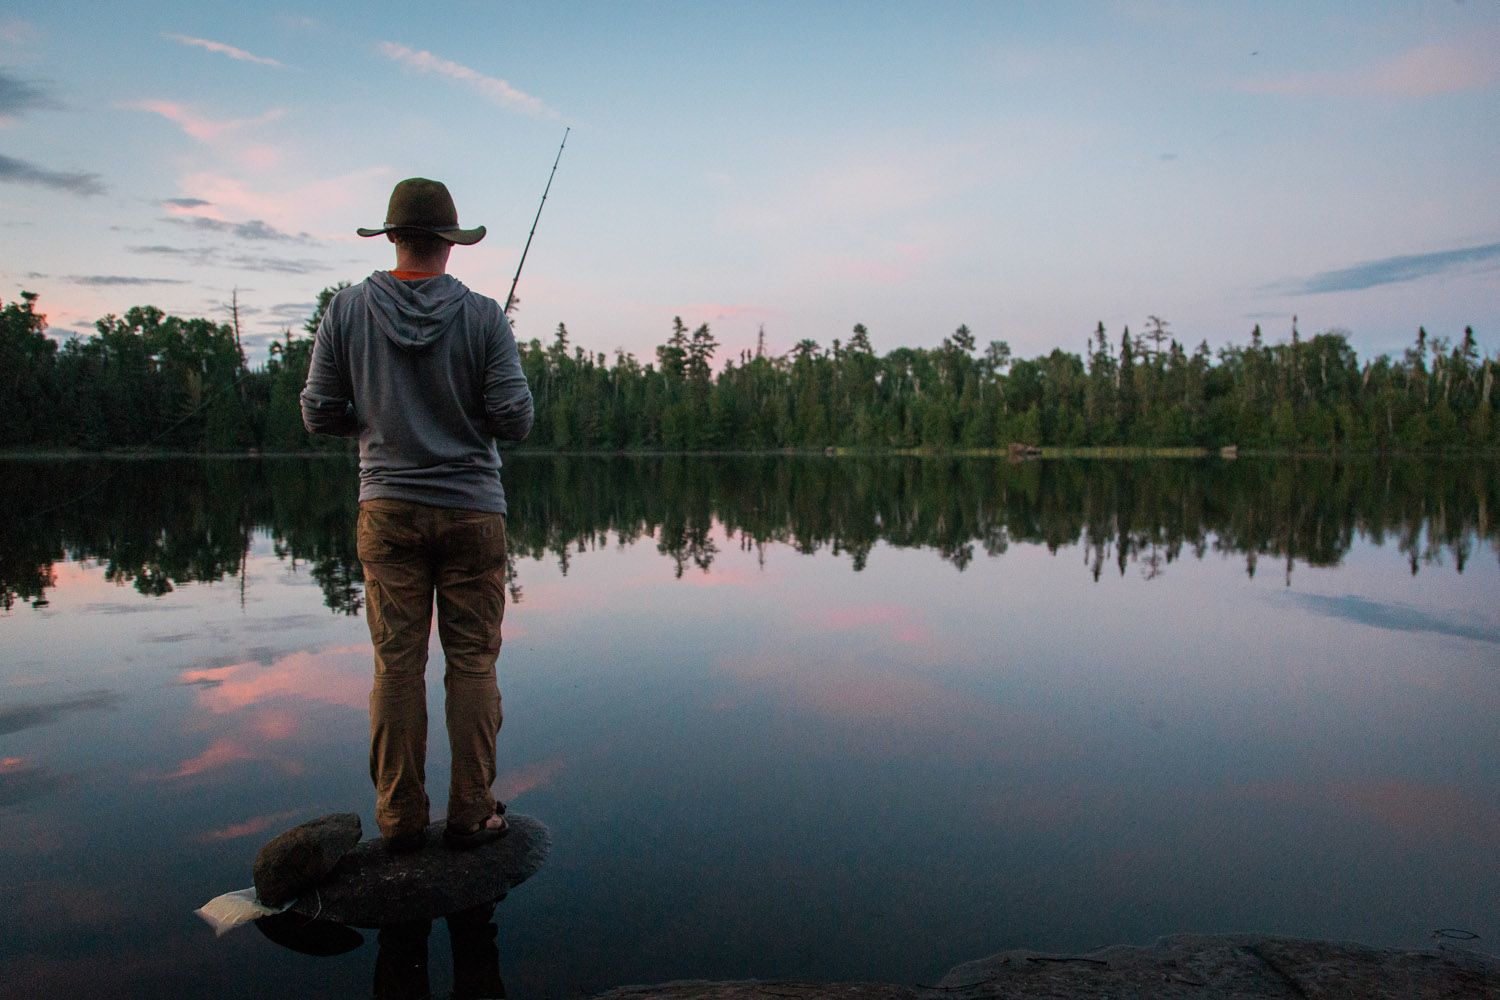 06-fishing-at-sunset-finn-kidd-boundary-waters-horseshoe-lake-bwca-northern-minnesota-mahonen-photography.jpg